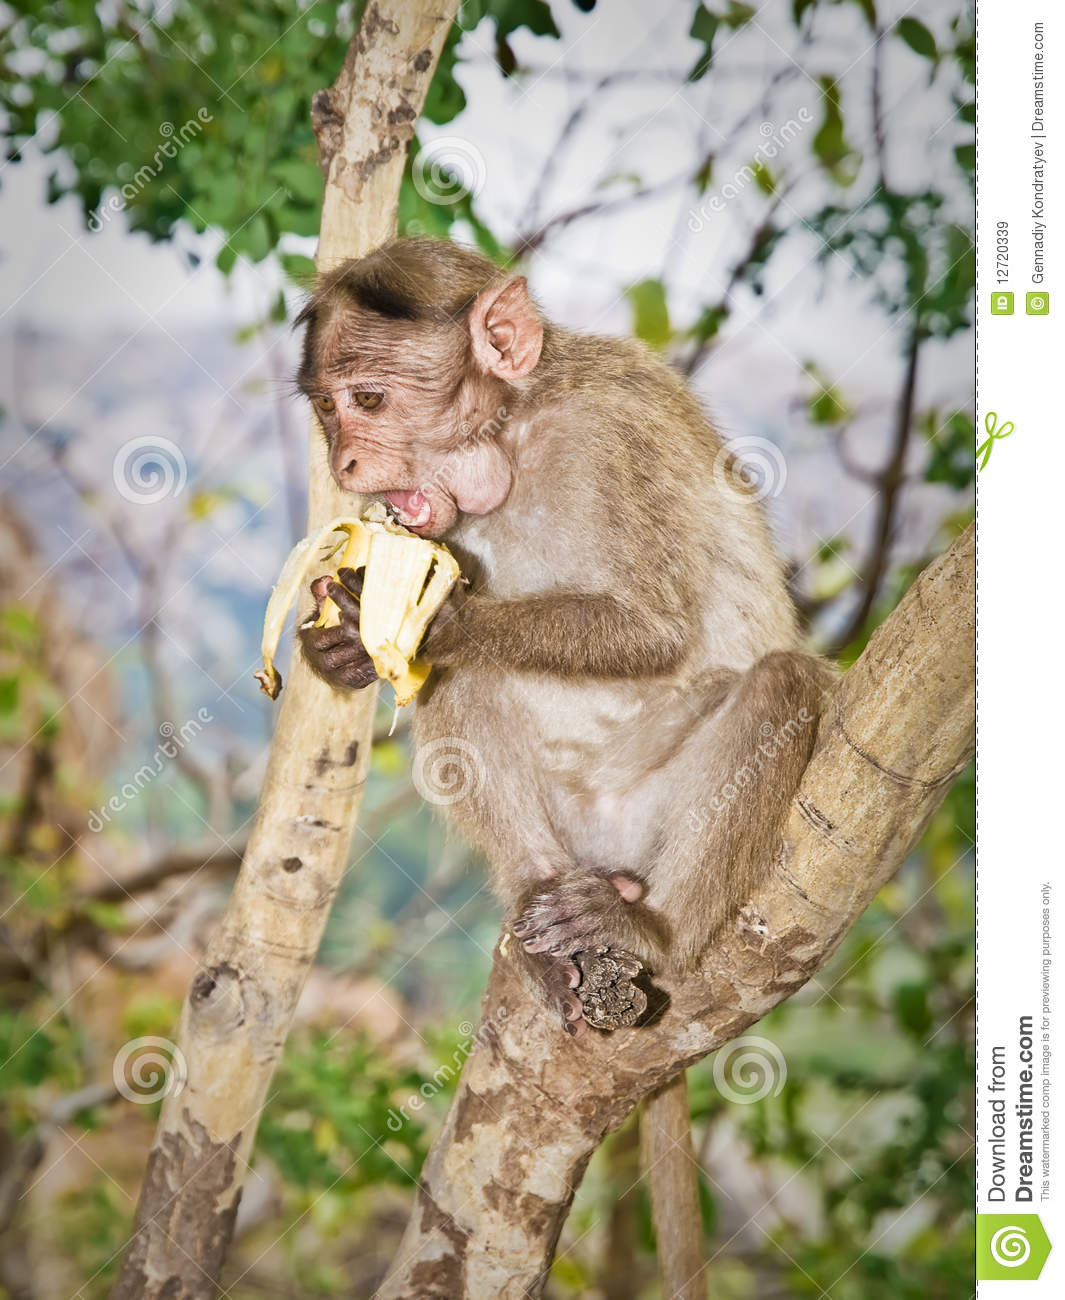 monkey on tree eats banana royalty free stock images